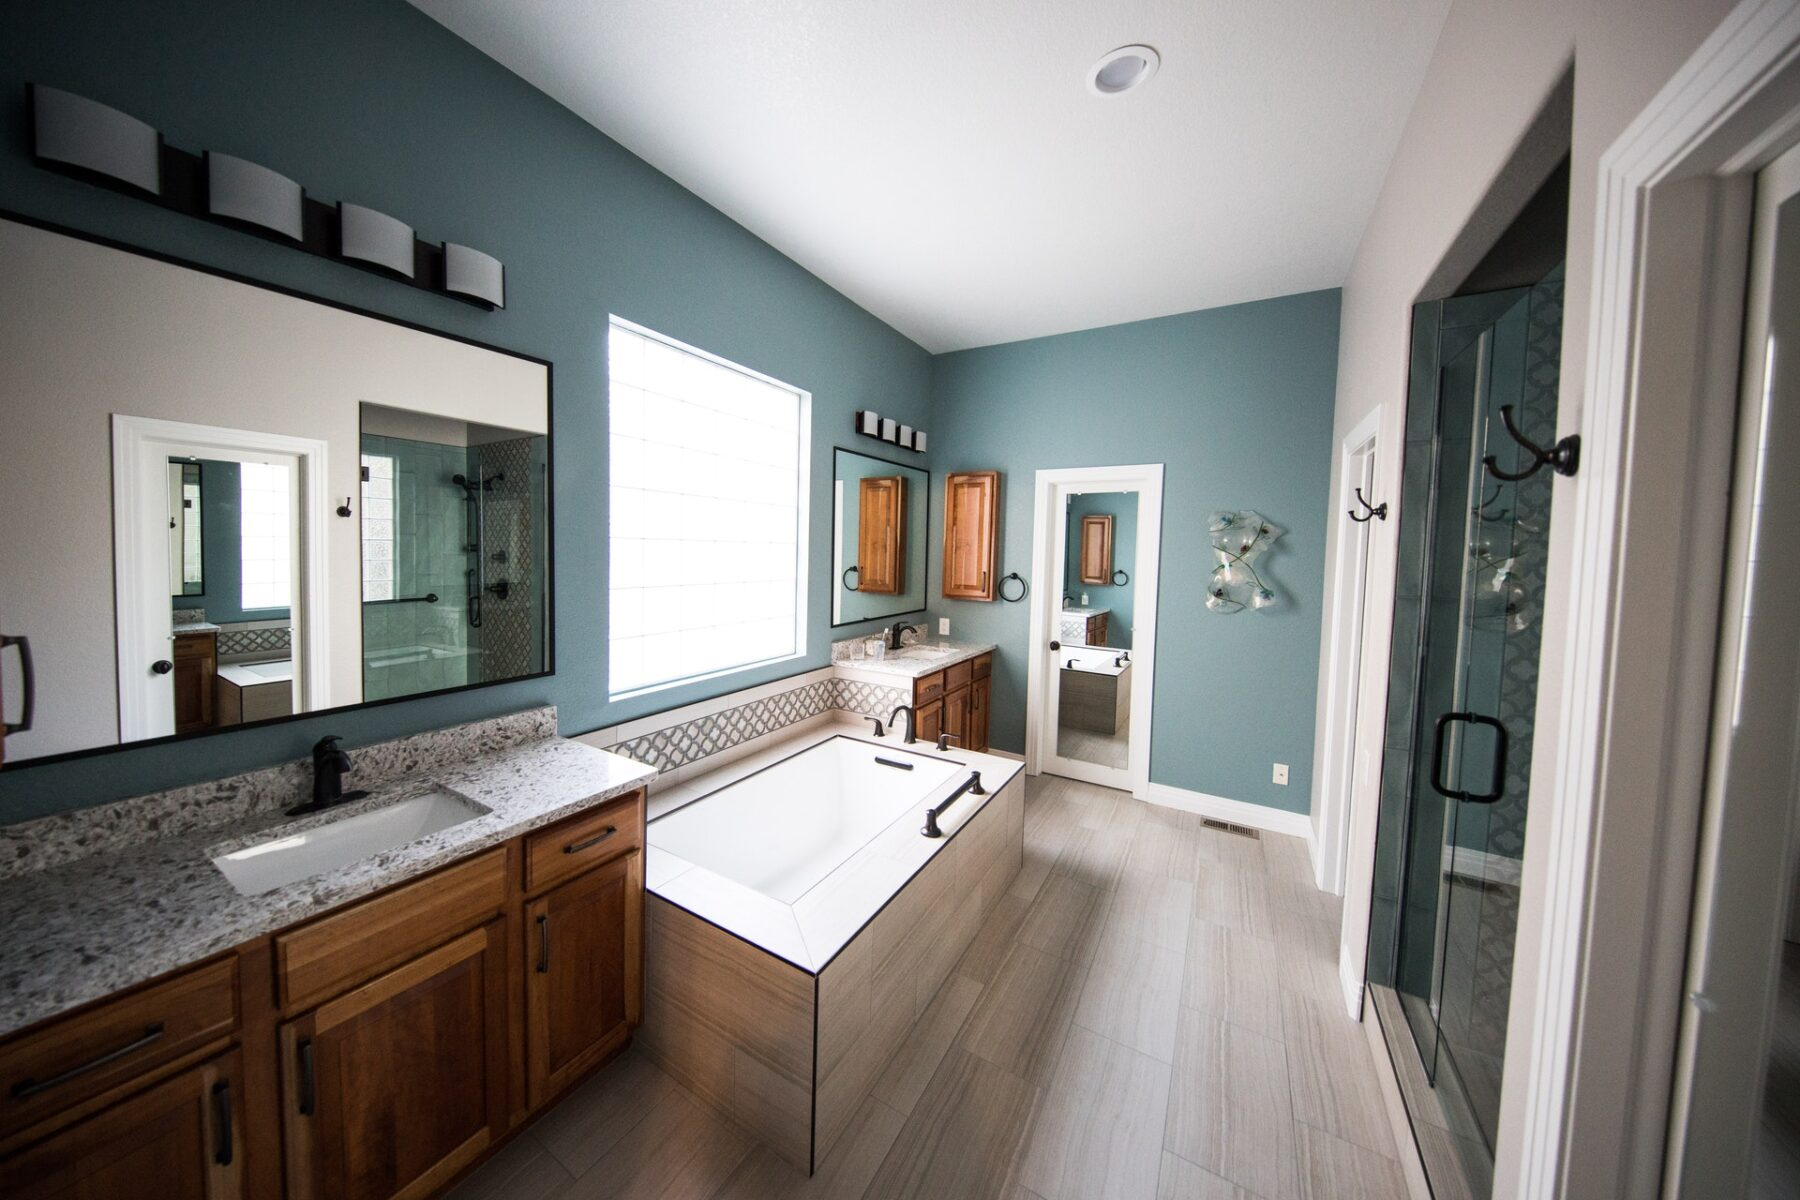 How to Decorate Your Bathroom: The Complete Beginner's Guide